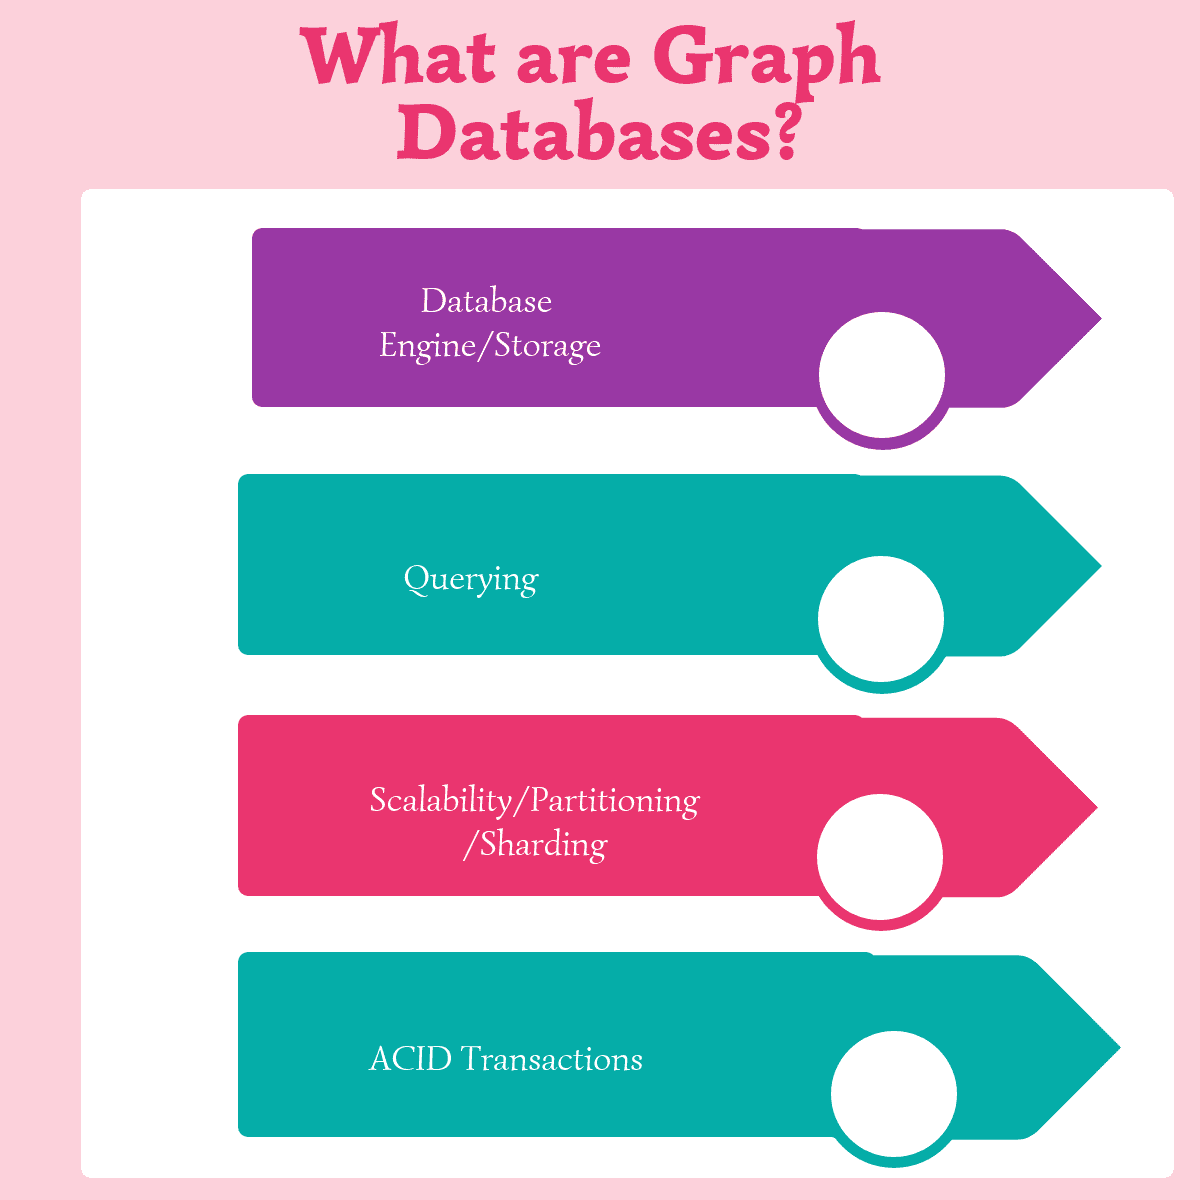 What are Graph Databases